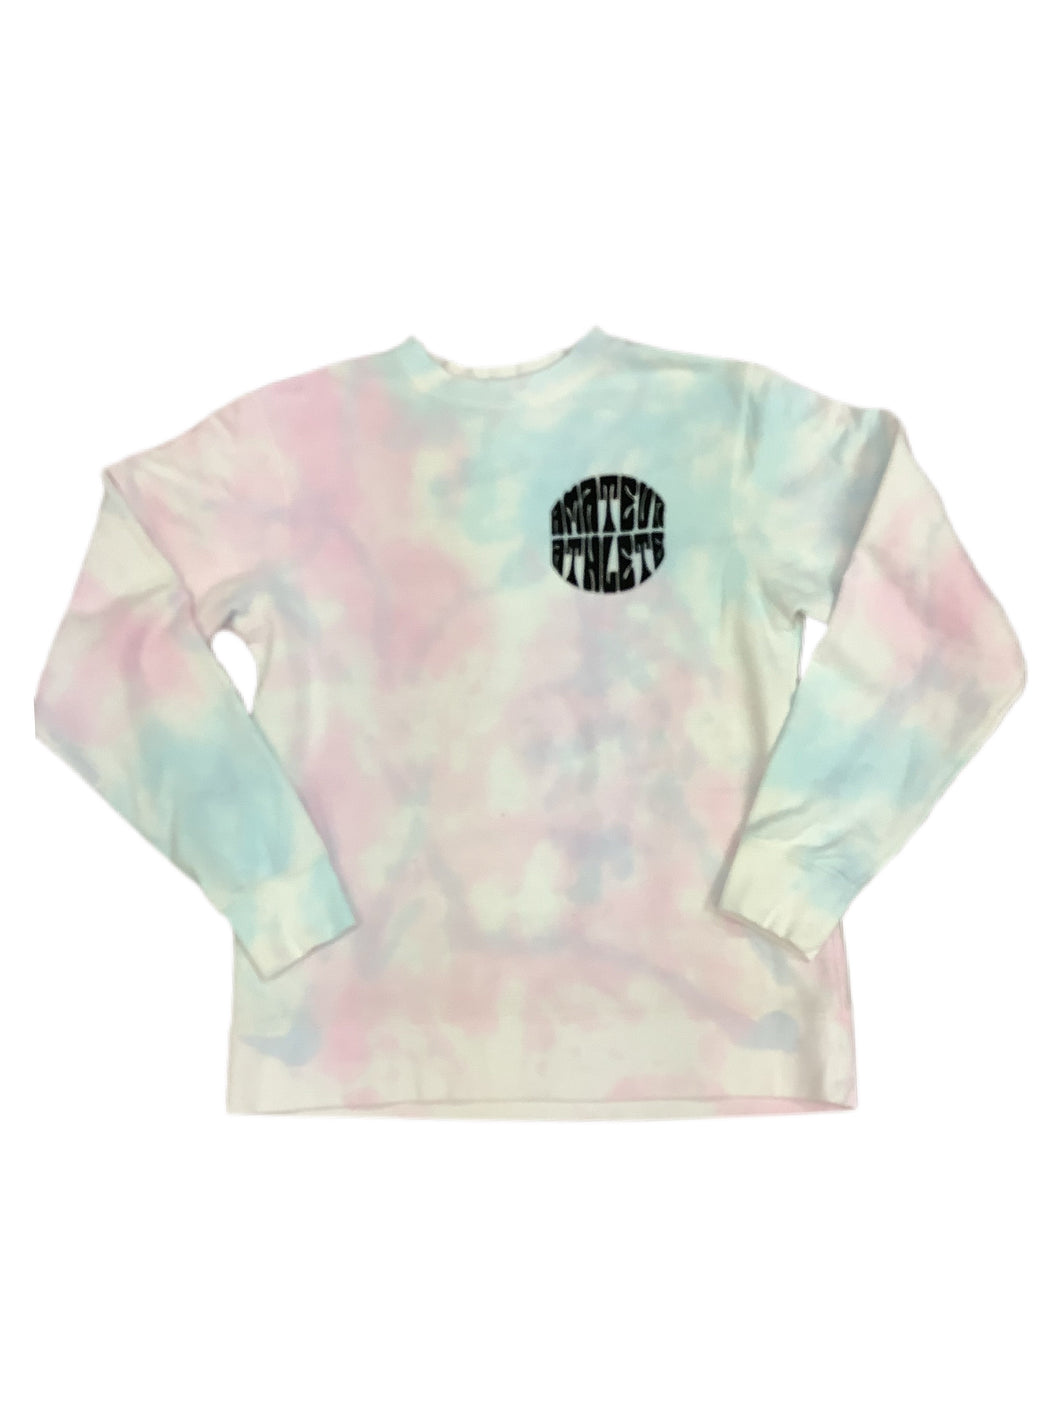 AA Crew Sweater Cotton Candy Tie Dye